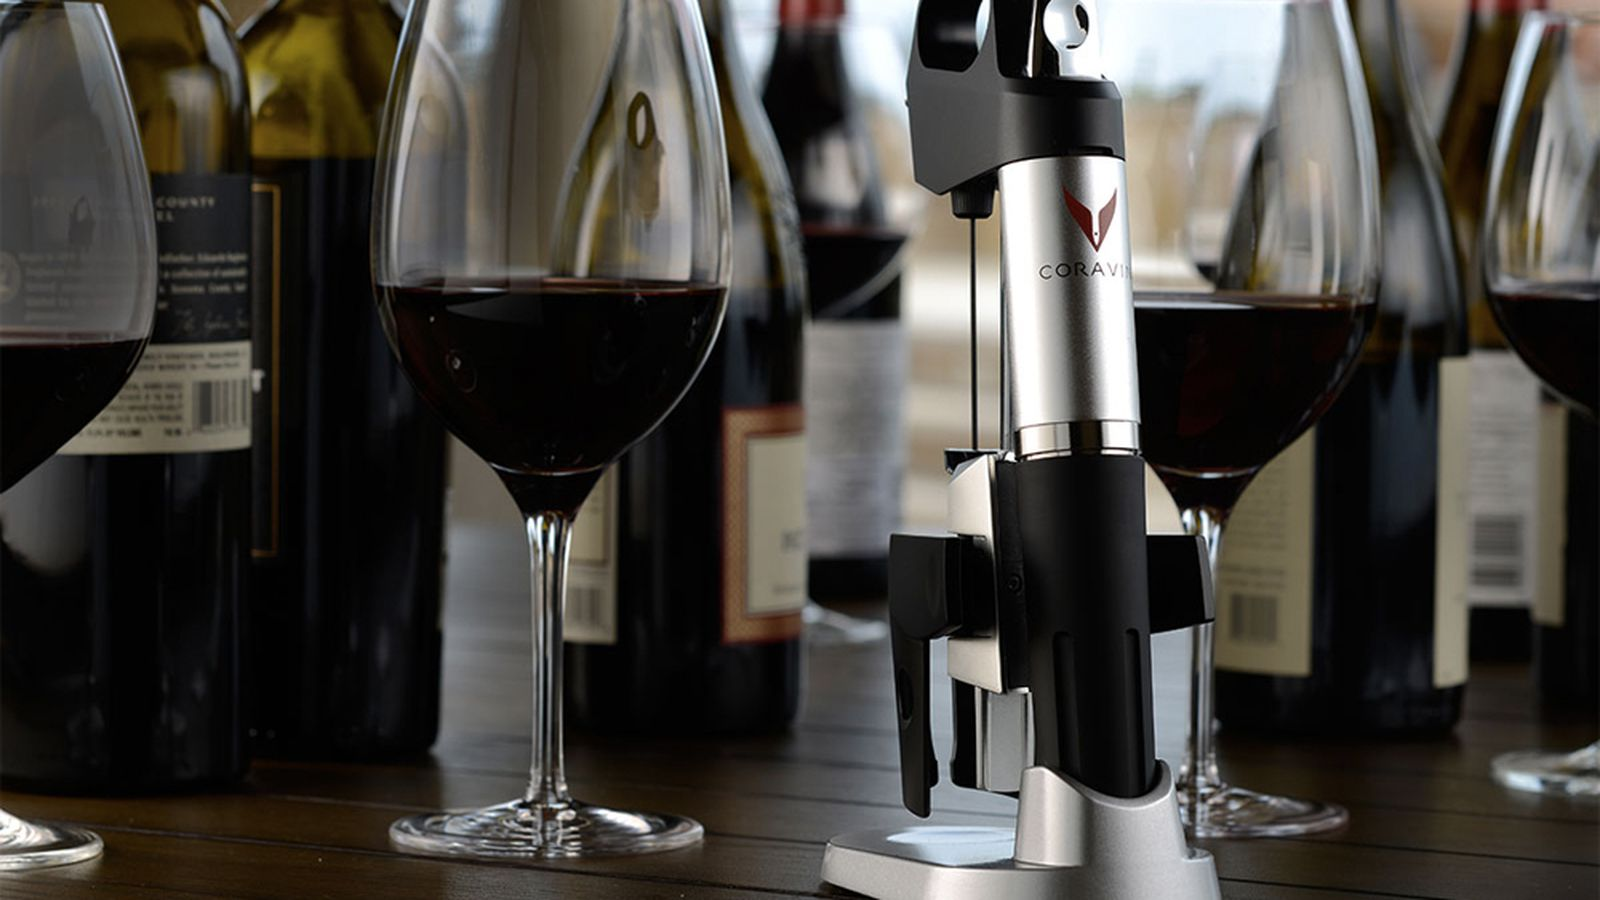 Coravin Wine System Stops Sales Due To Reports Of Bursting